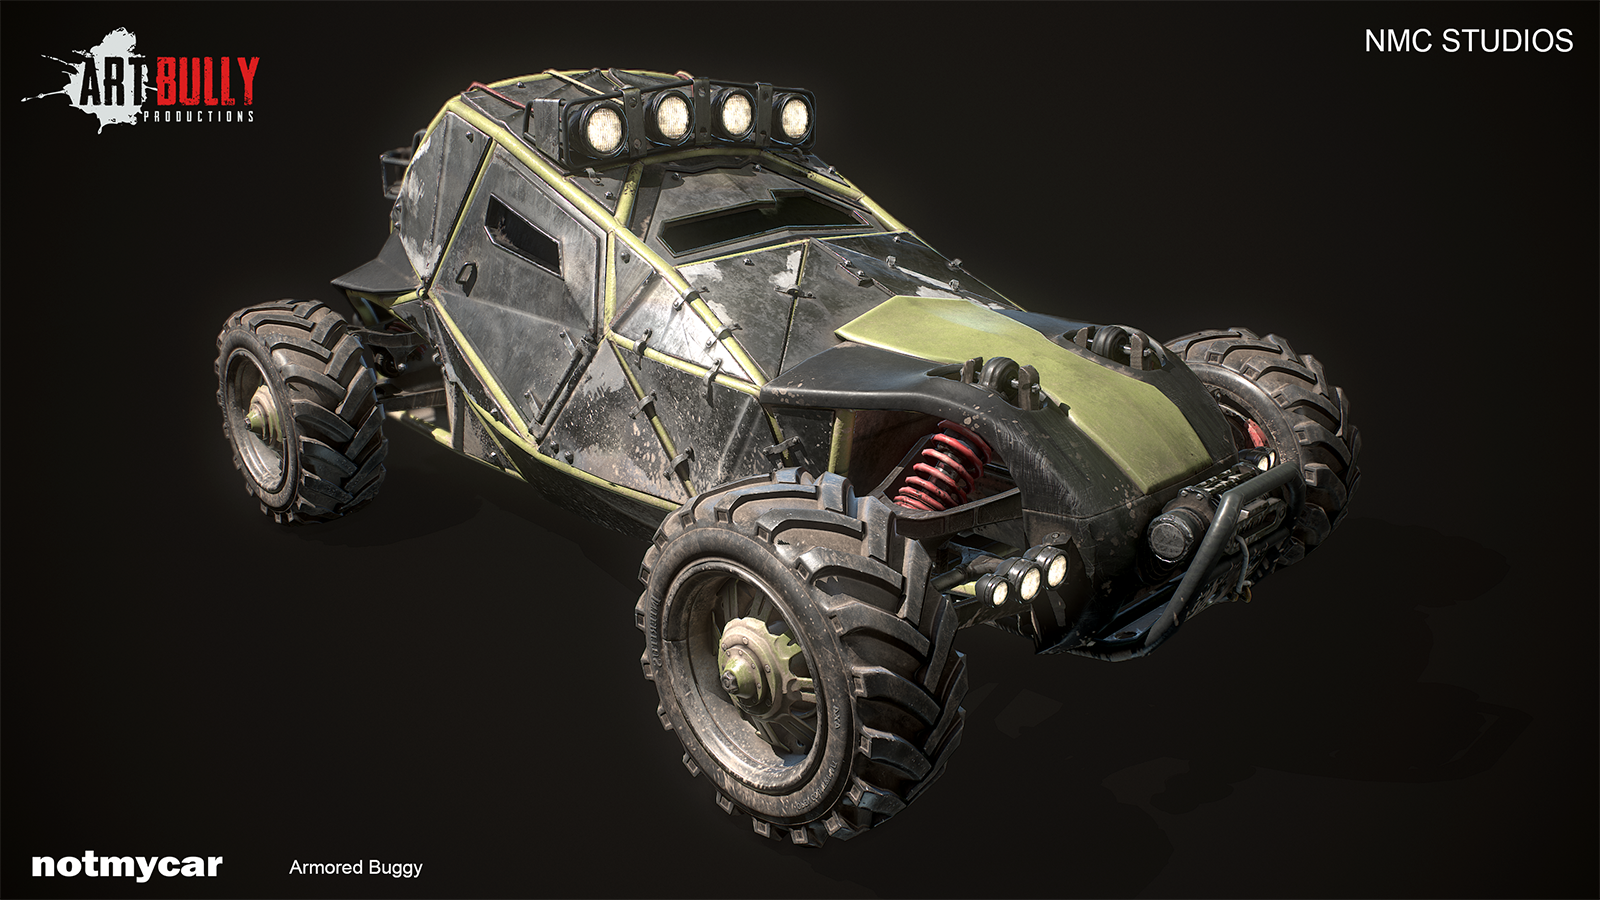 Artbully.co_NMC_Armored_Buggy_Front_Low.png